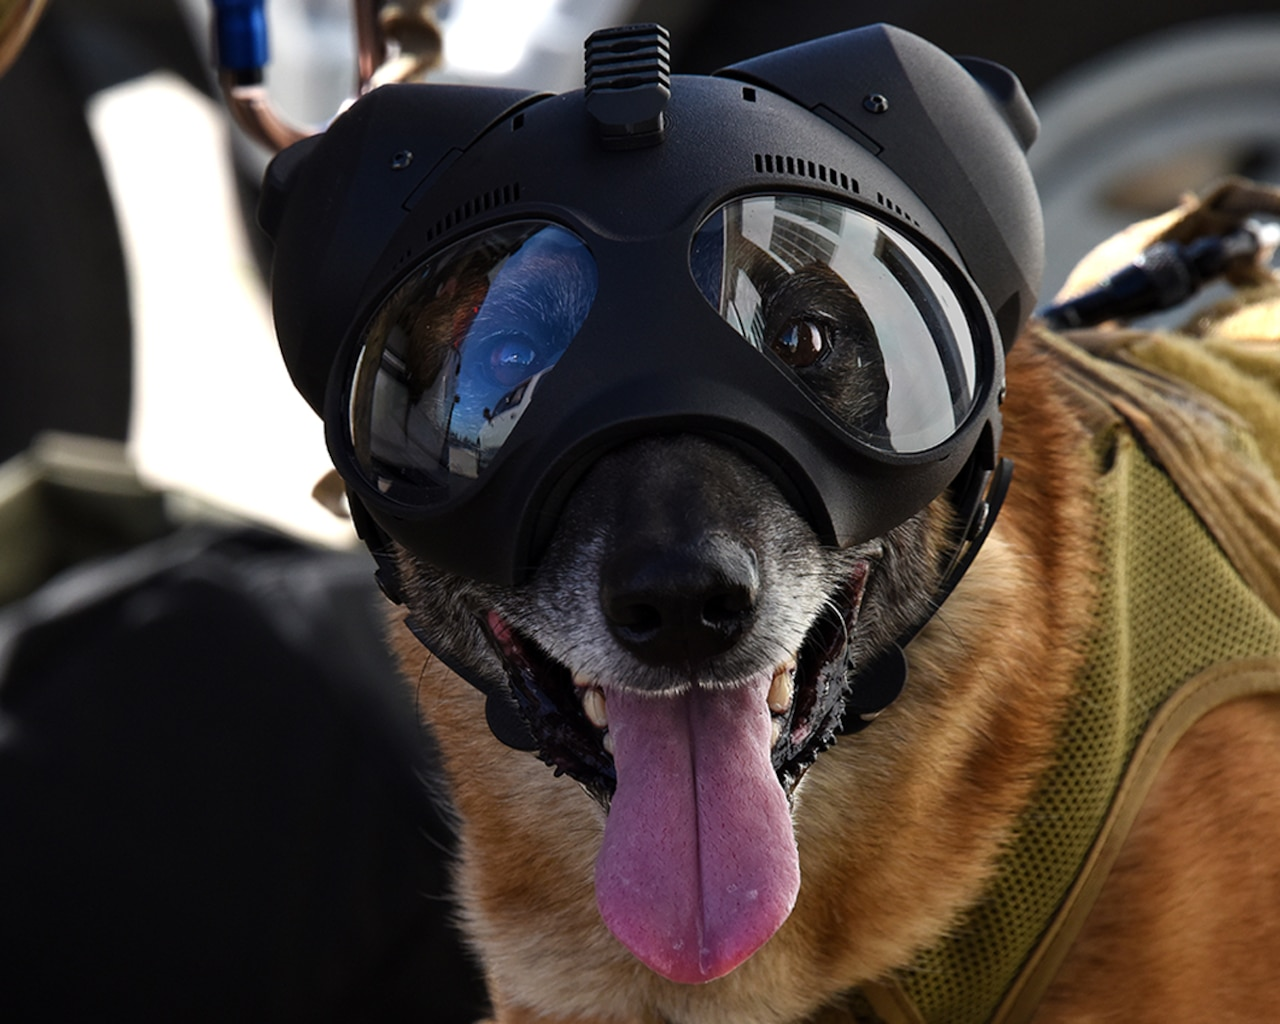 They may not have actual boots on the ground, but you'll find U.S. military working dogs serving wherever American troops do. They are as loveable as they are loyal, but make no mistake – these are highly skilled warriors, trained by the best to serve alongside them.